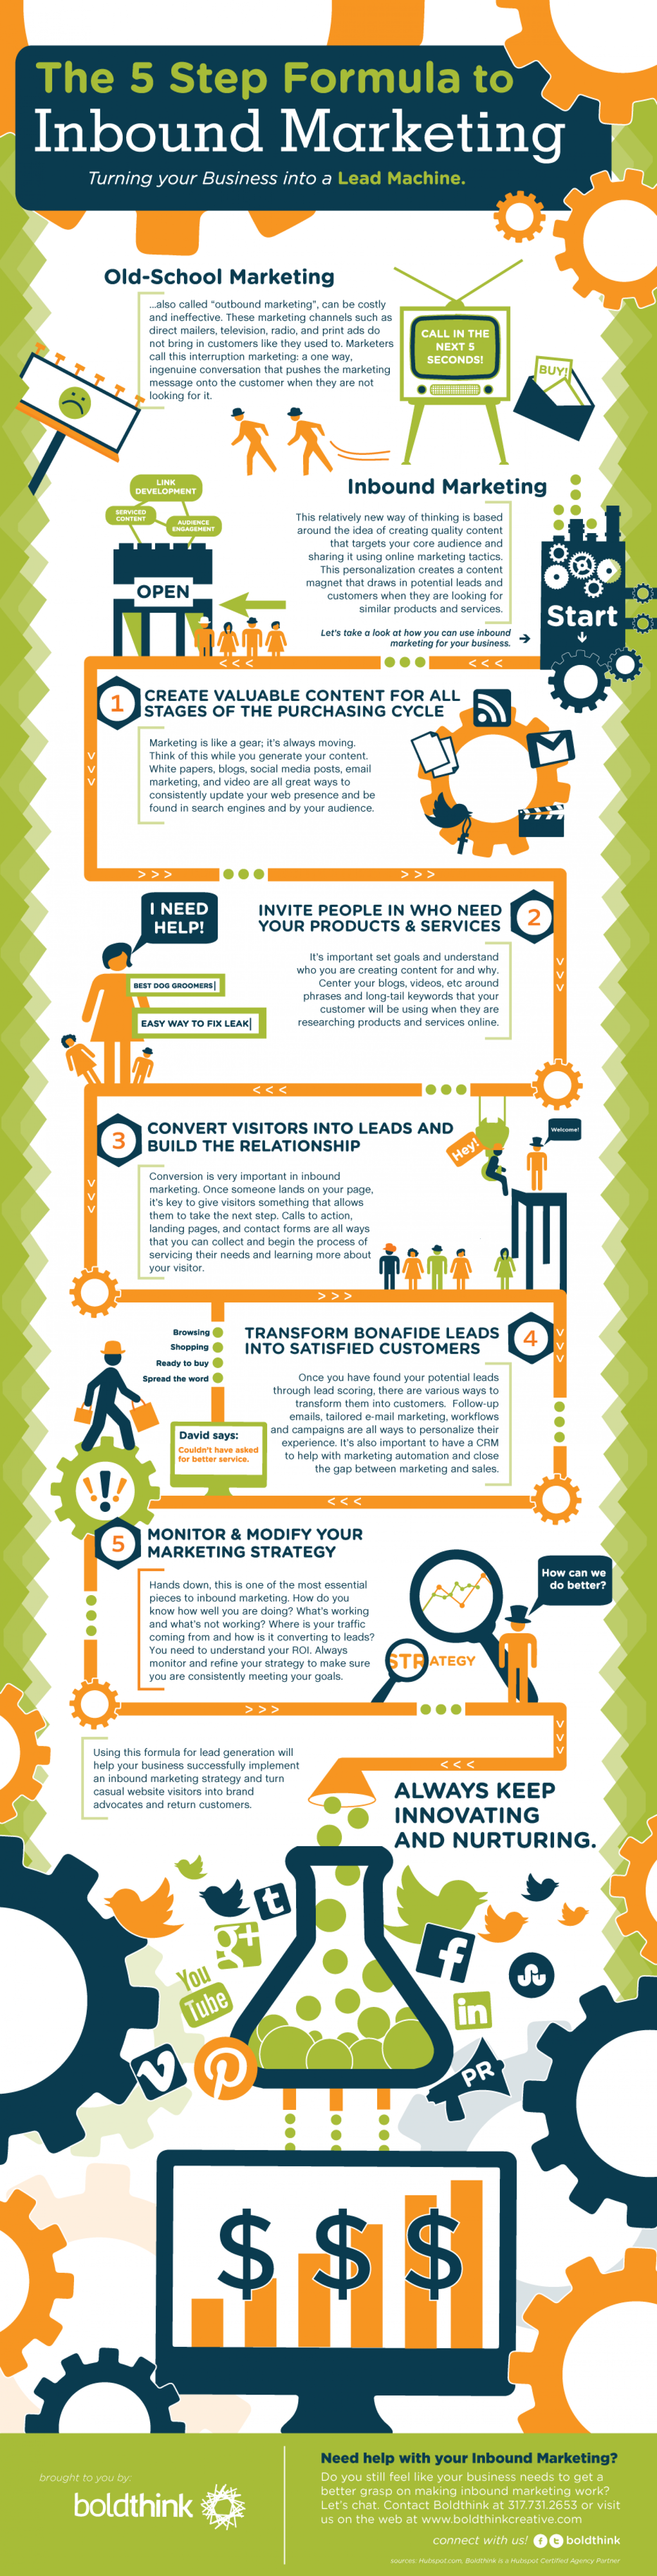 The 5 Step Formula to Inbound Marketing Infographic